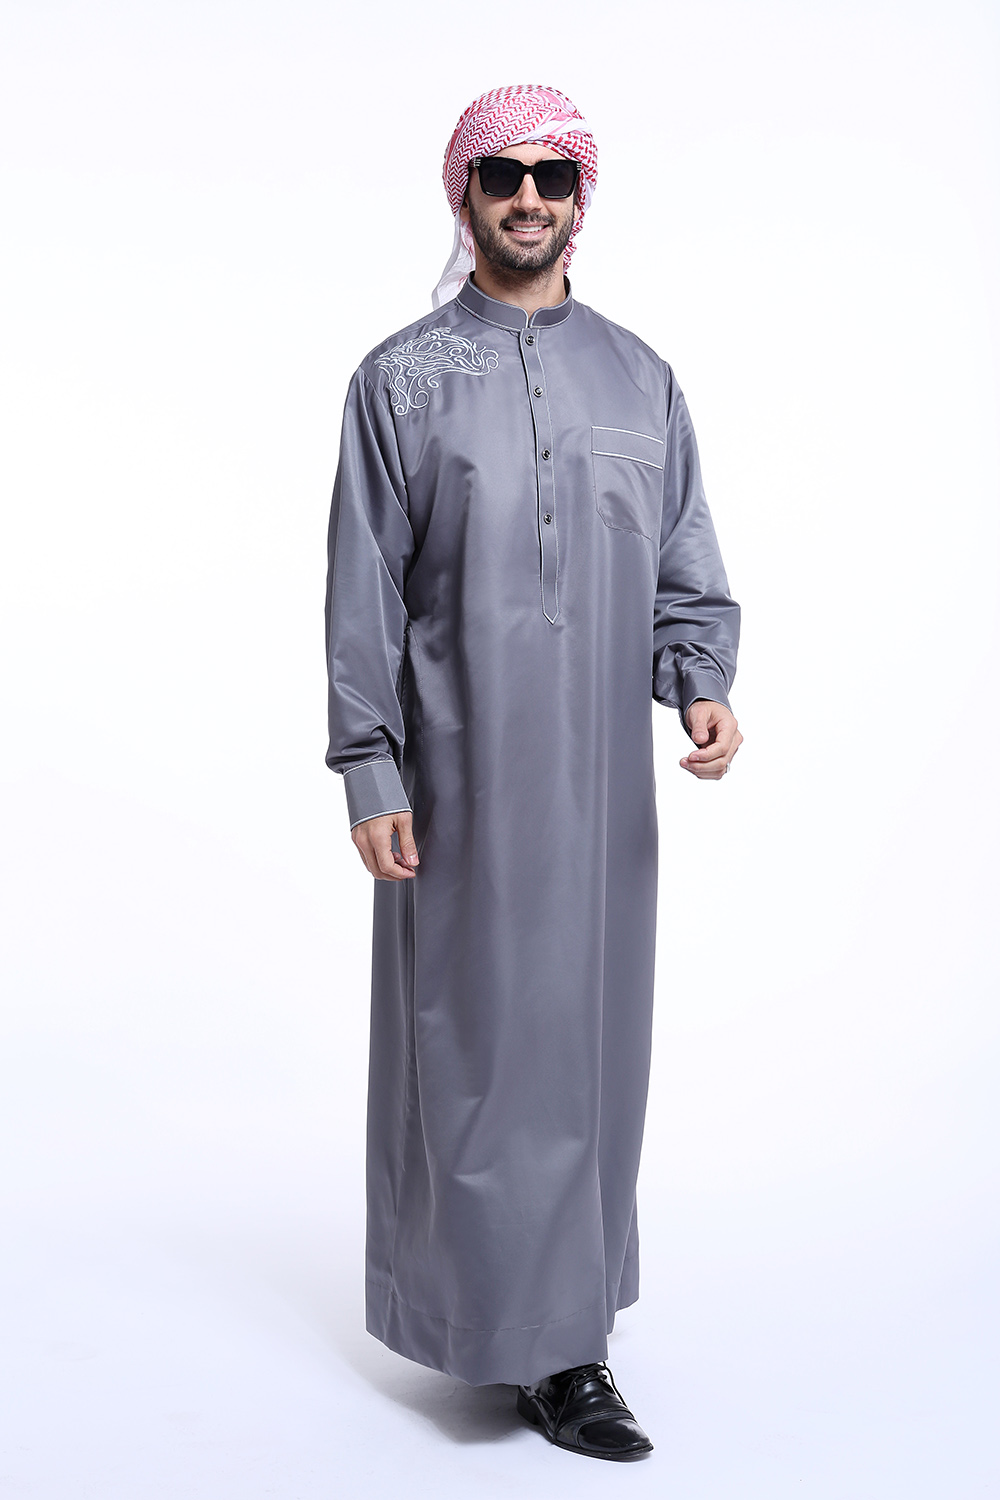 free shipping long sleeves new design muslim man gown dubai men abaya